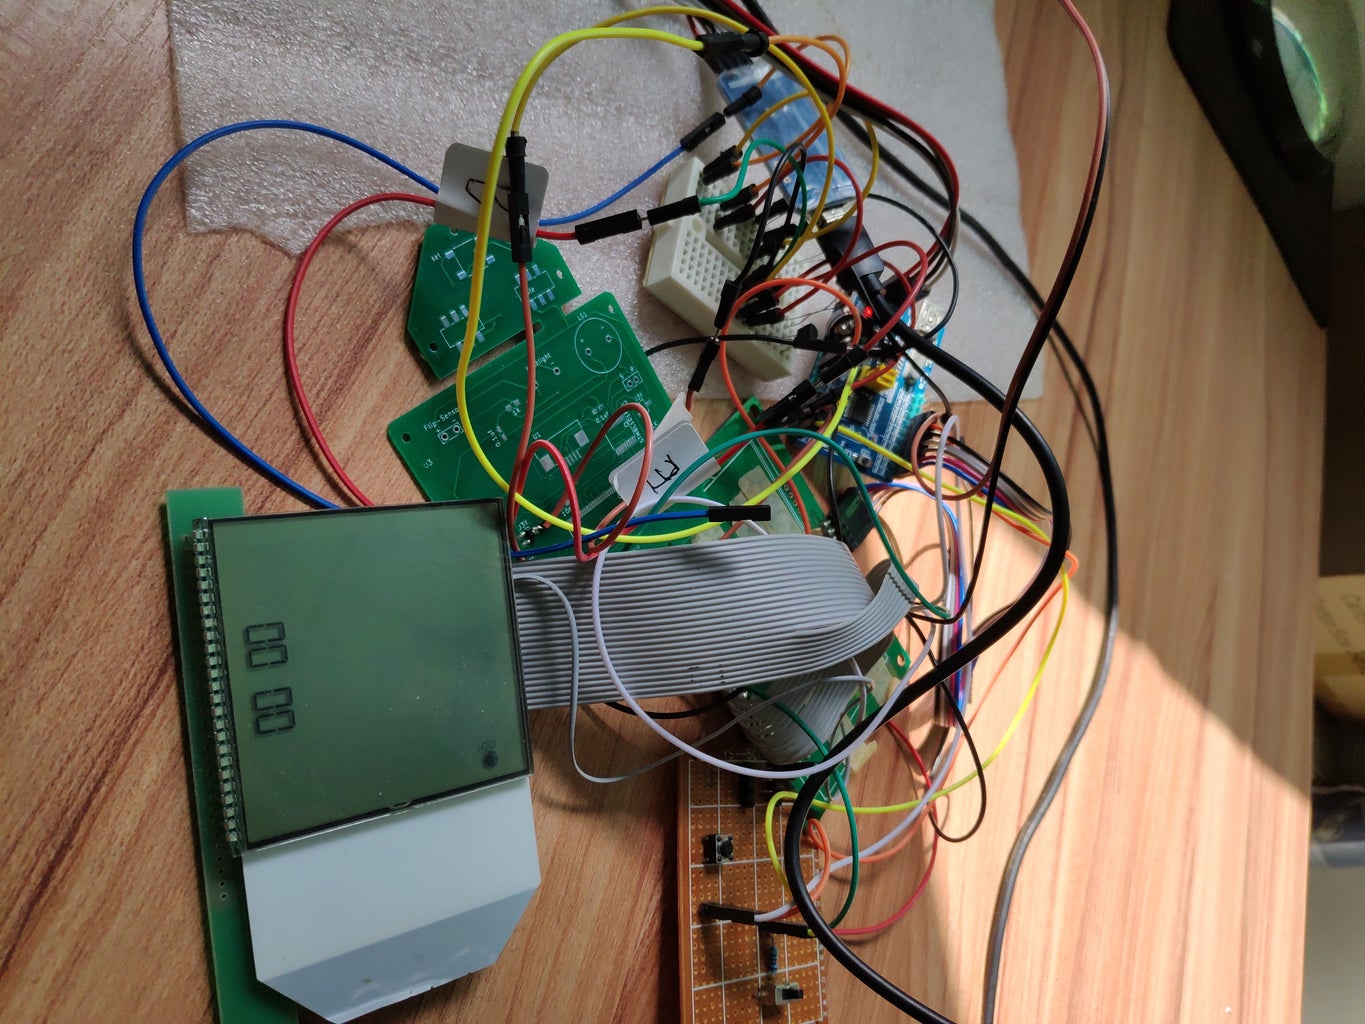 Programming STM8L101 and Assemle All Components and Test, Debug, Teste So on an So Forth